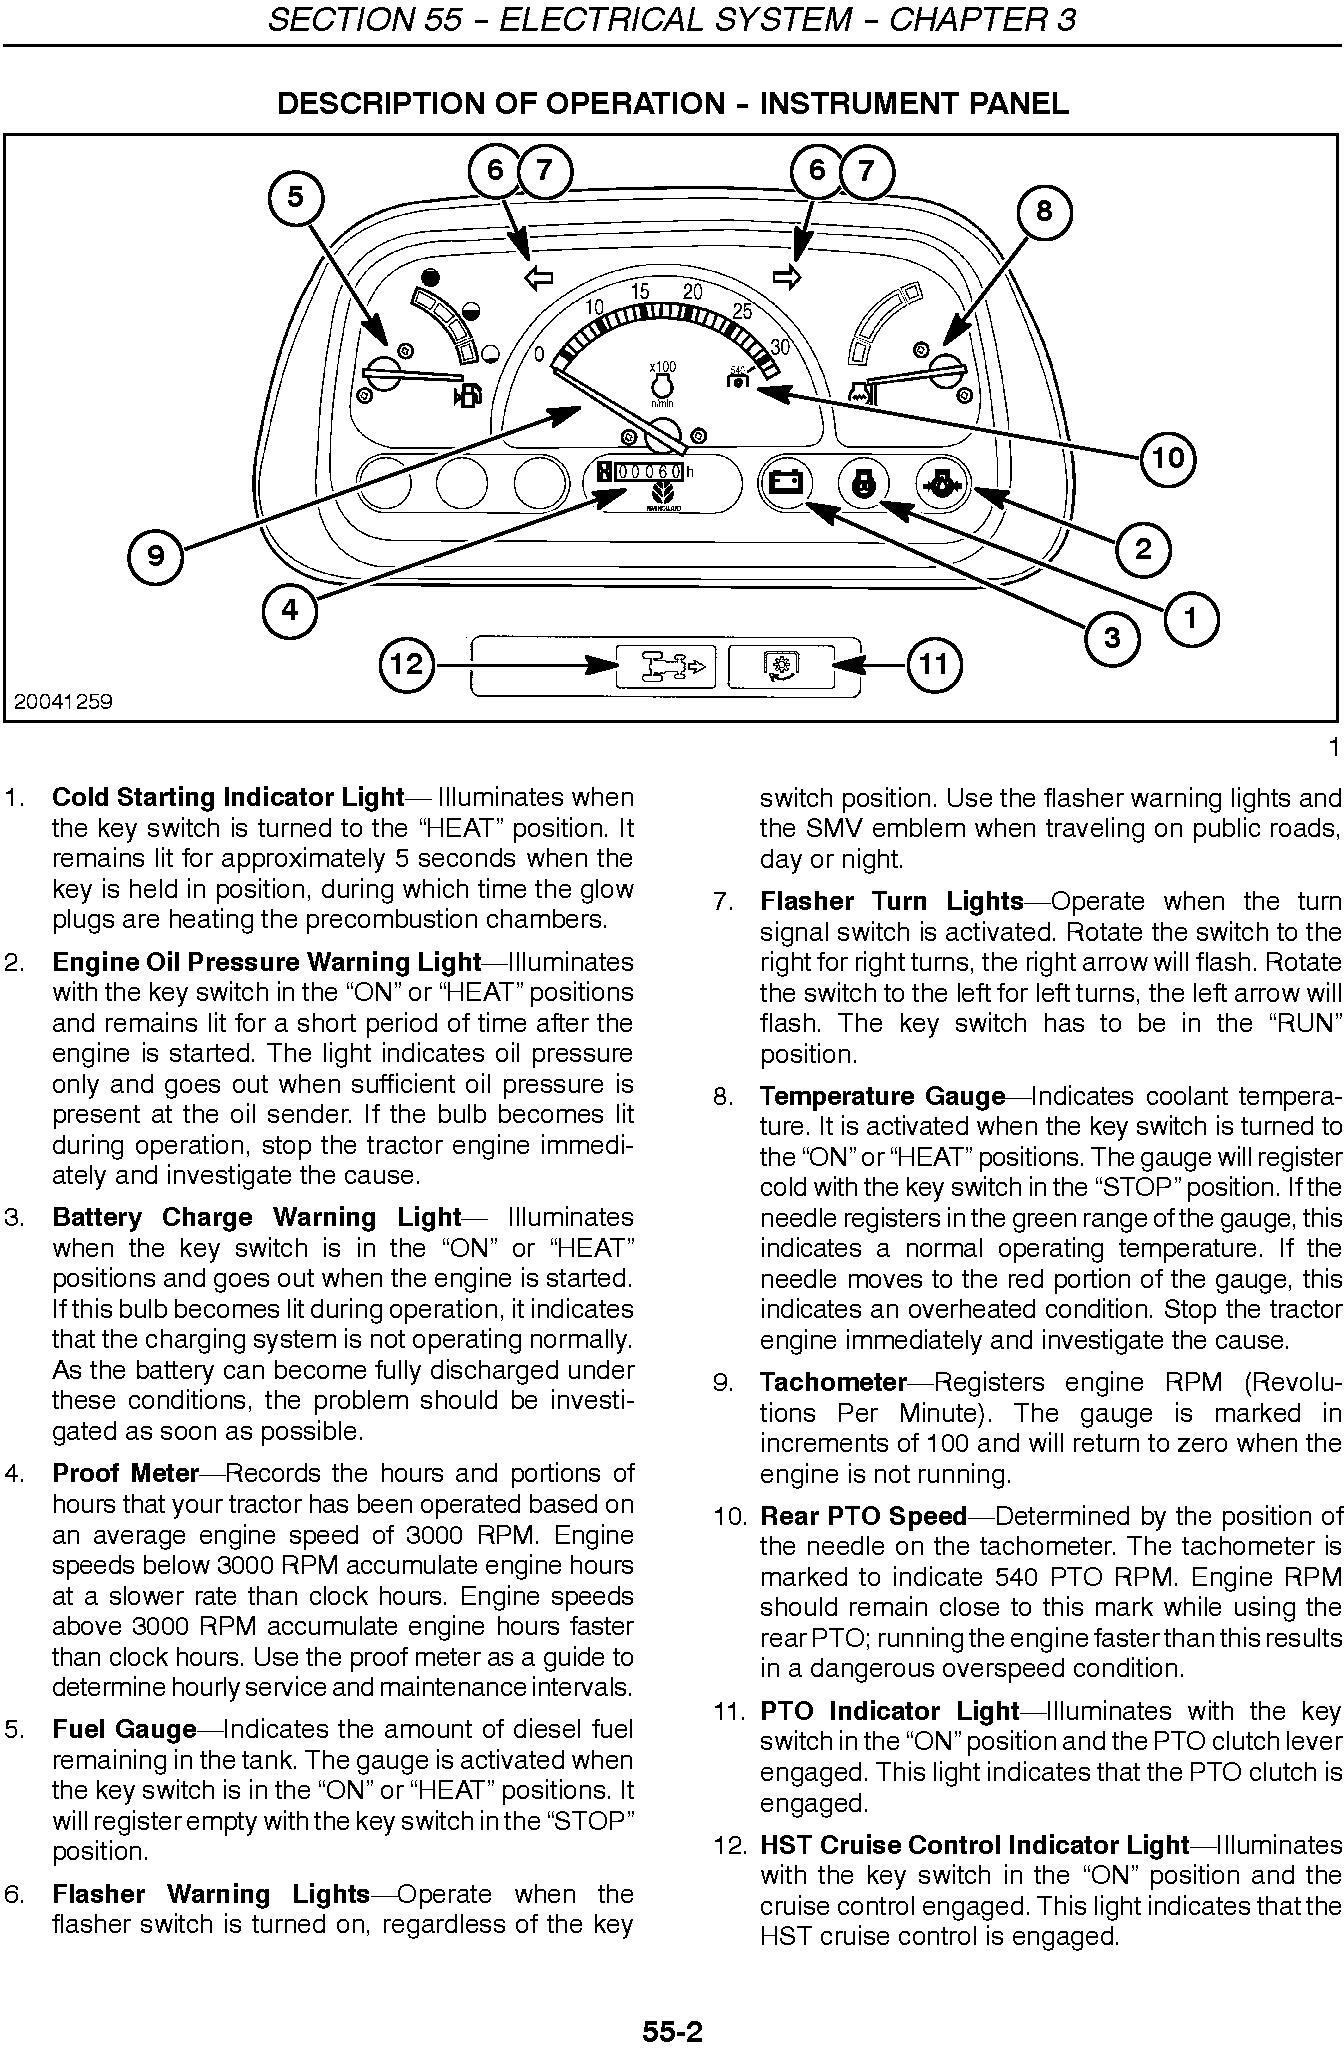 New Holland T1010, T1030, T1110 Tractor Service Manual - 3